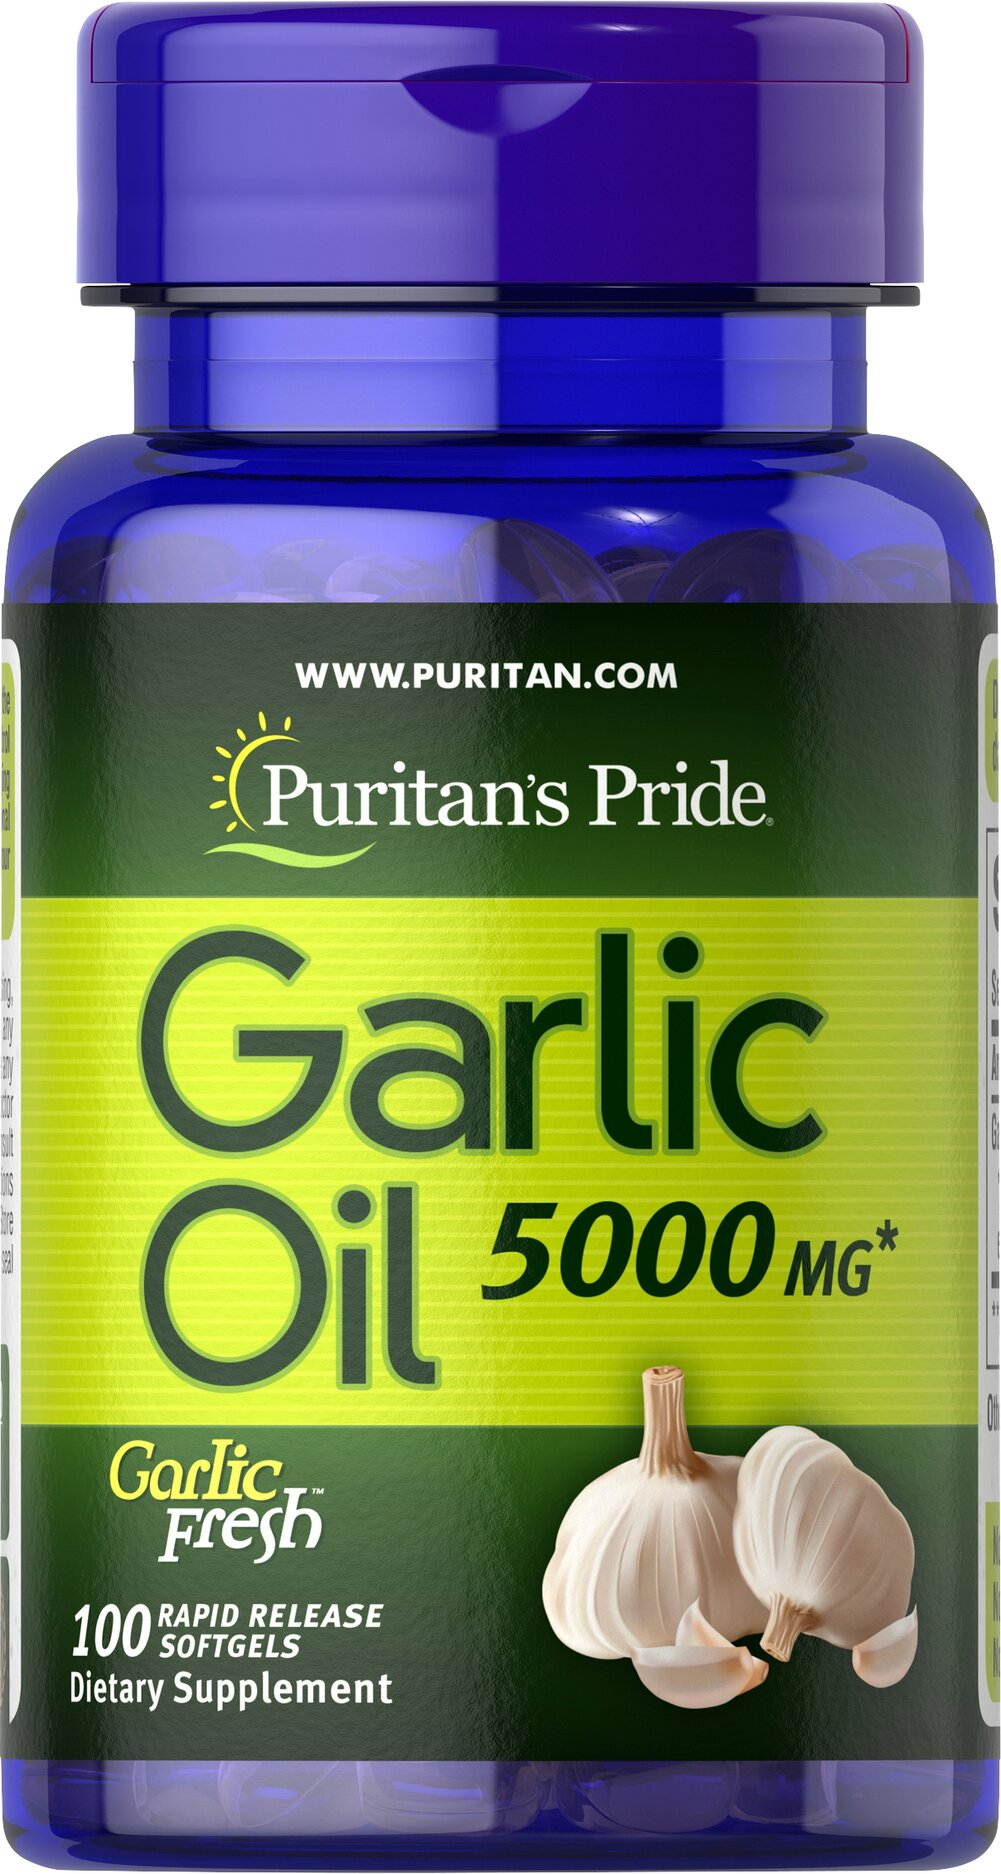 Garlic Oil 5000 mg  100 Softgels 5000 mg $10.99